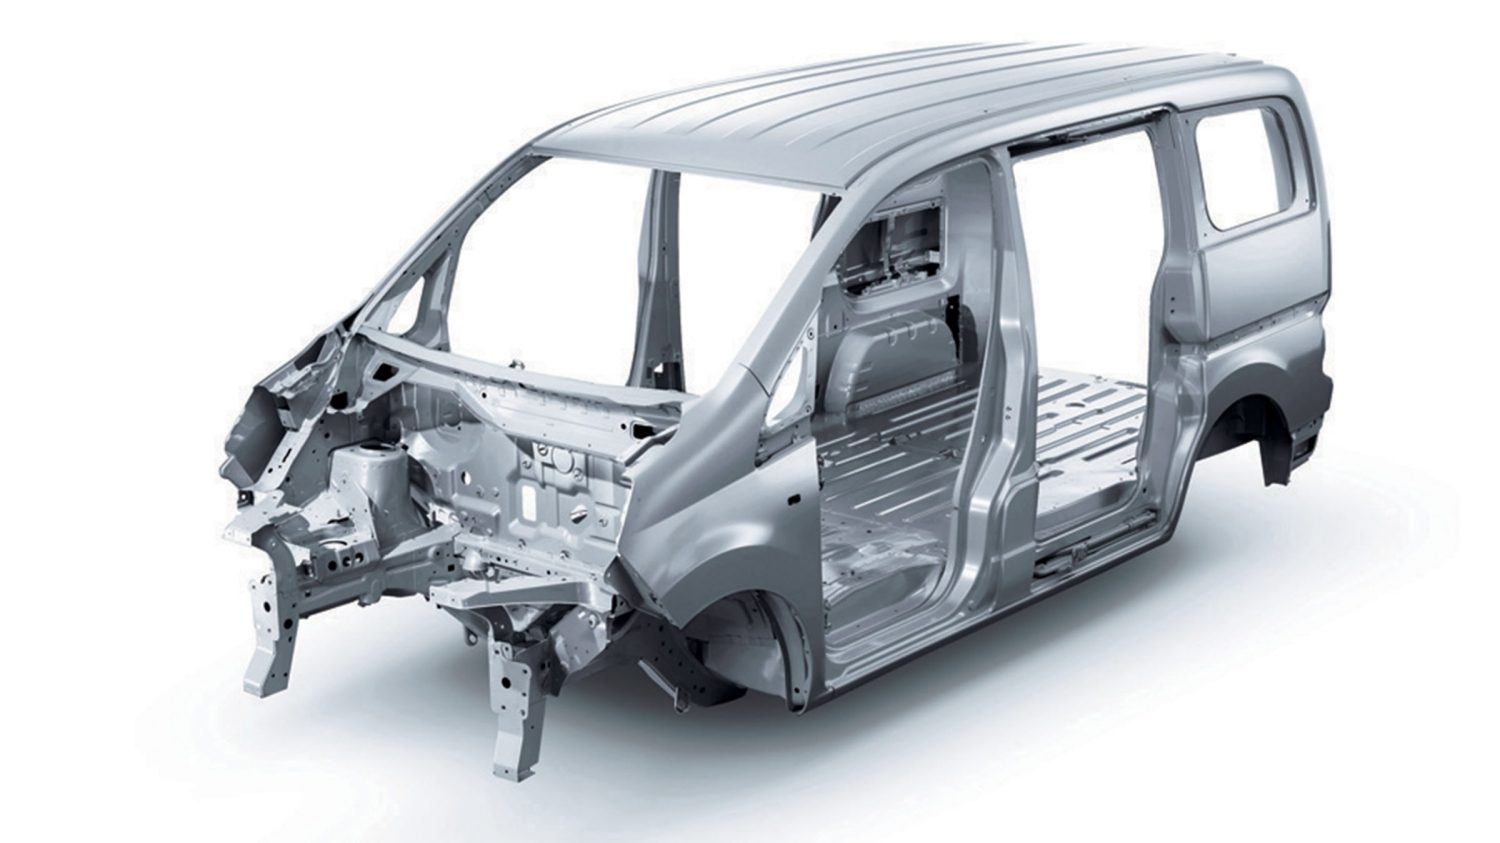 Van | Nissan NV200 | Centre structure